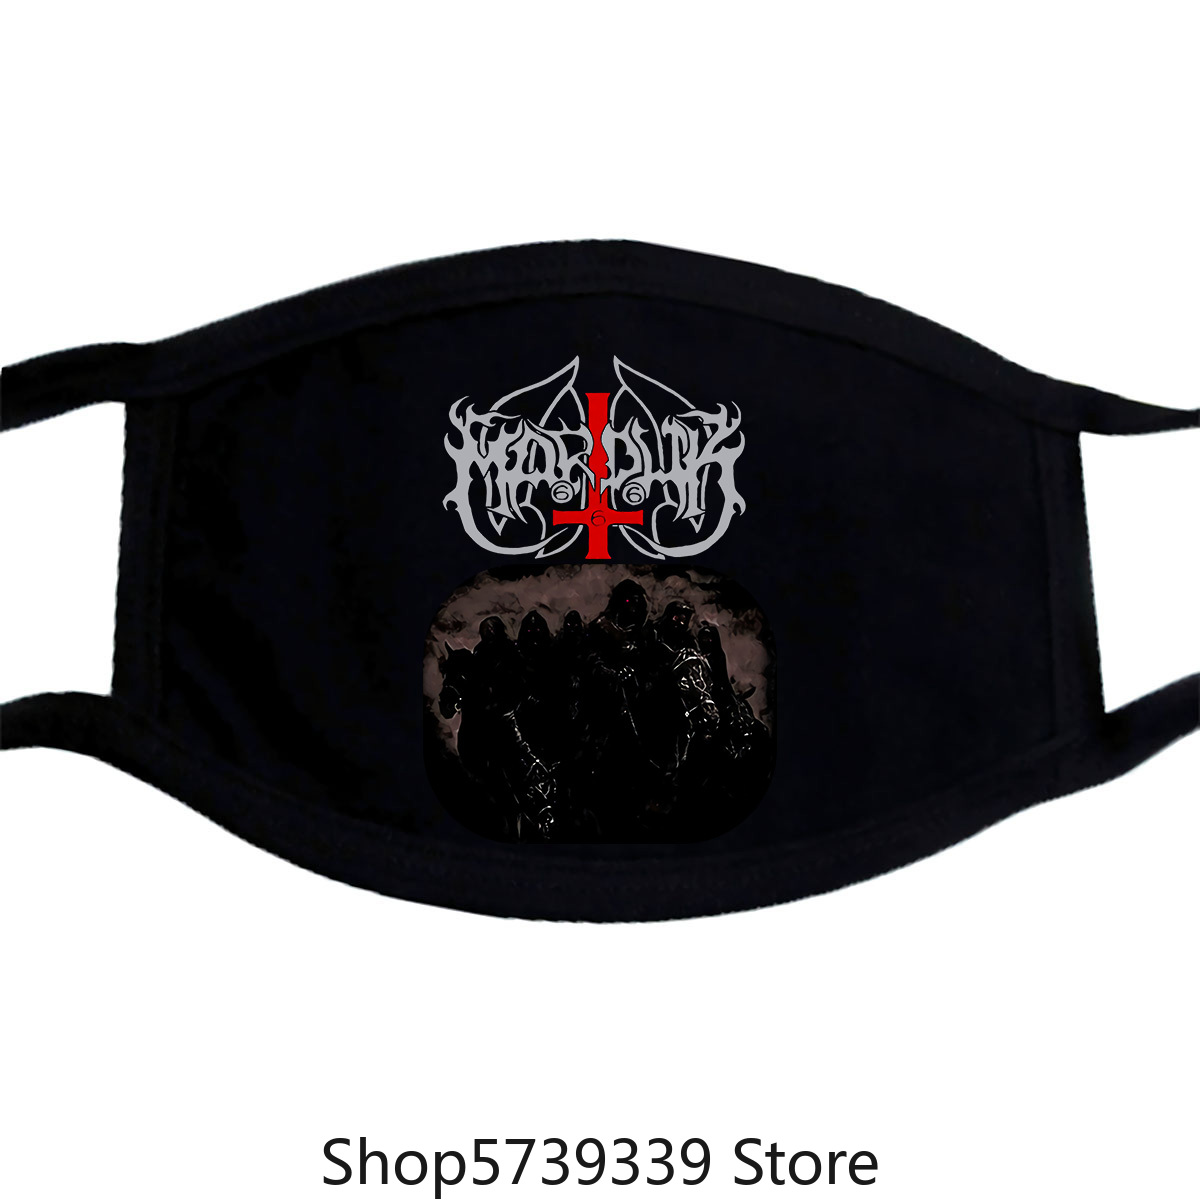 Marduk Those Of The Unlight Mask-New Washable Reusable Mask For Unisex Black